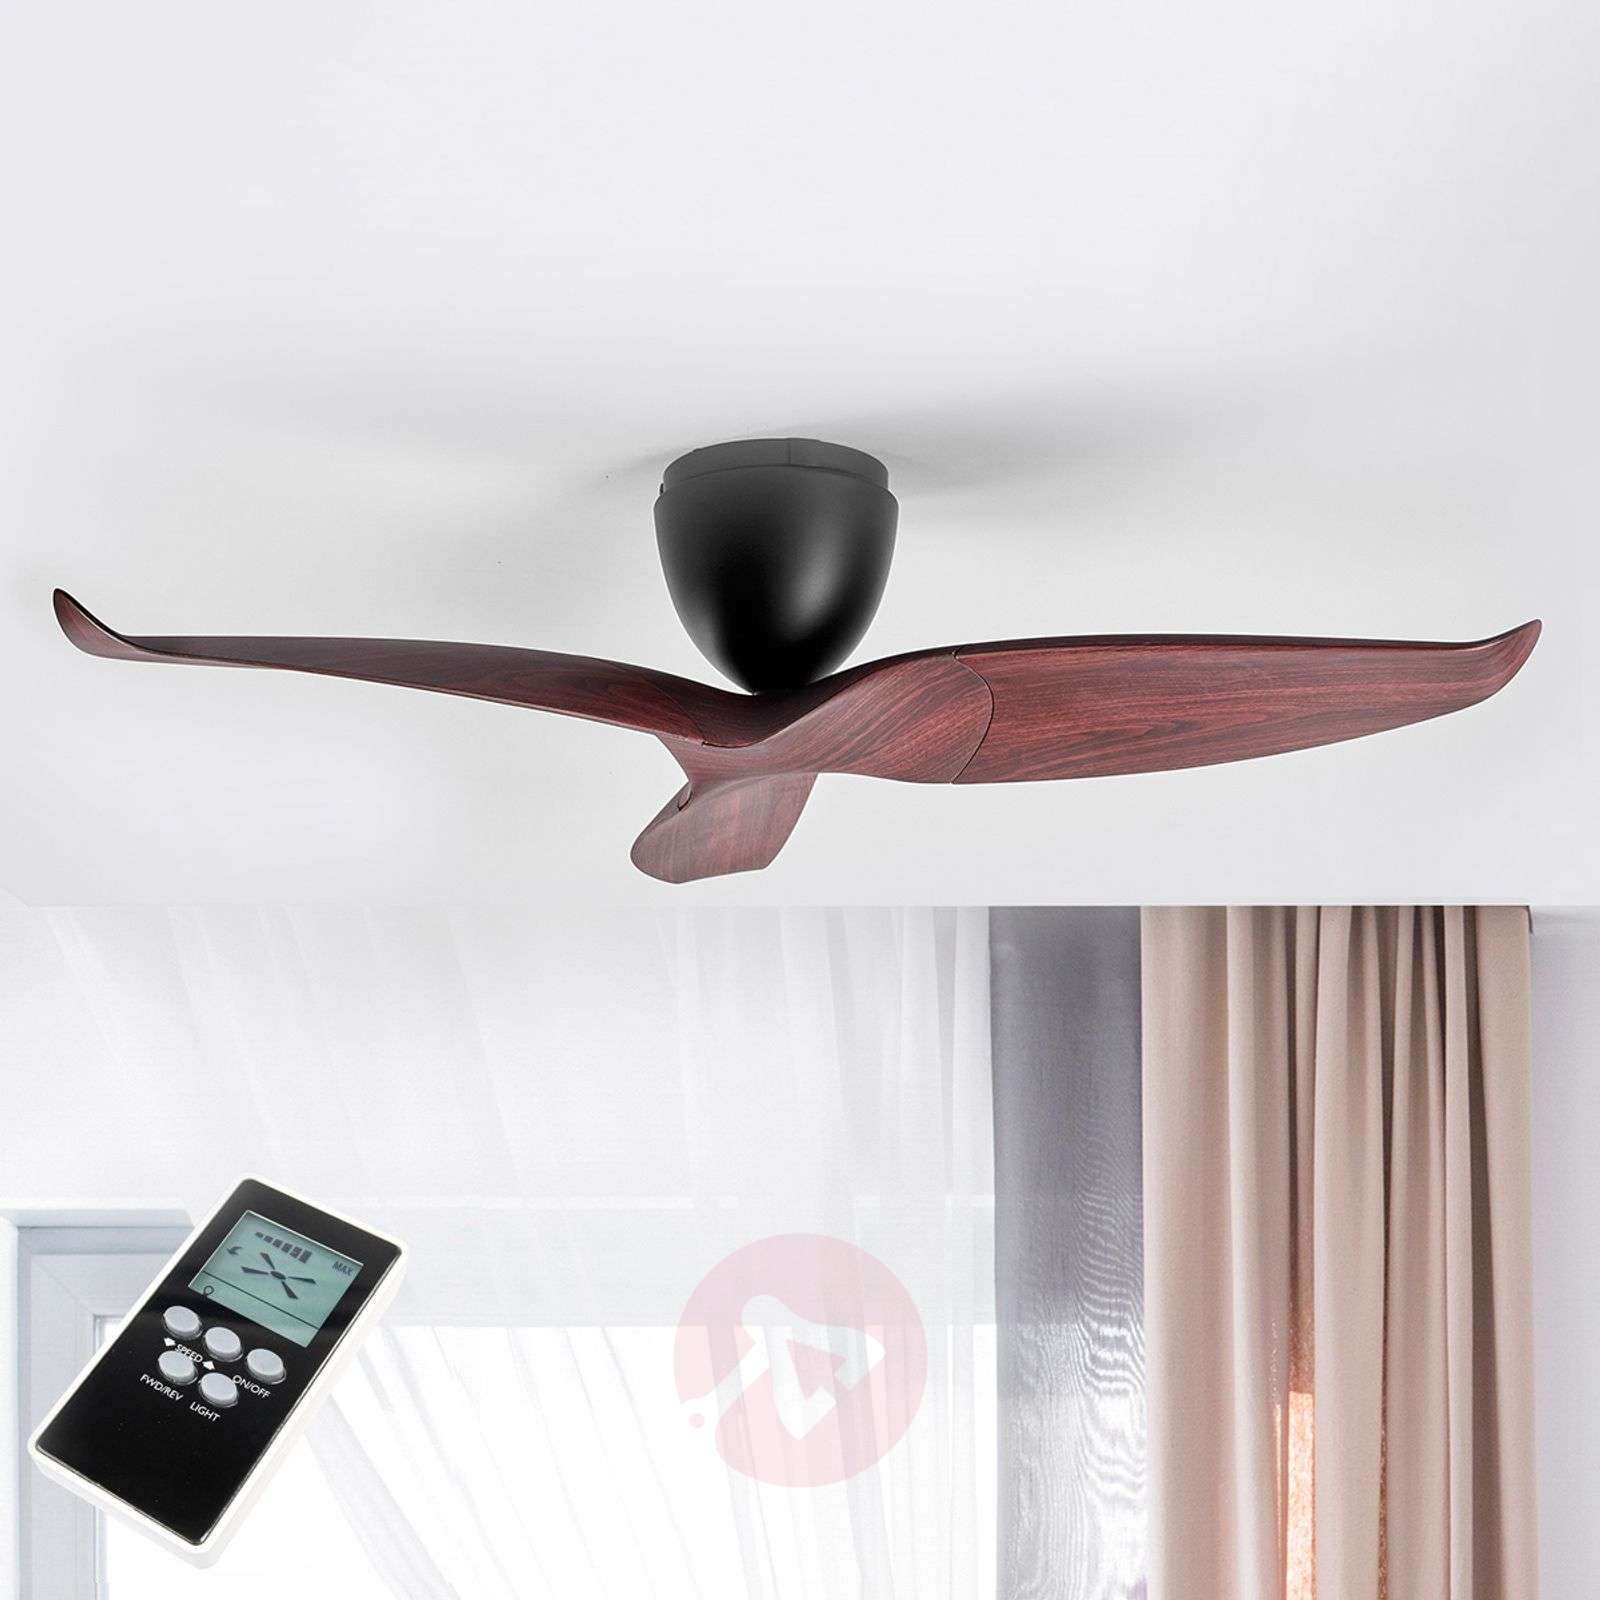 Wood finish ceiling fan aeratron 126 cm lights wood finish ceiling fan aeratron 126 cm 1068013 09 mozeypictures Gallery